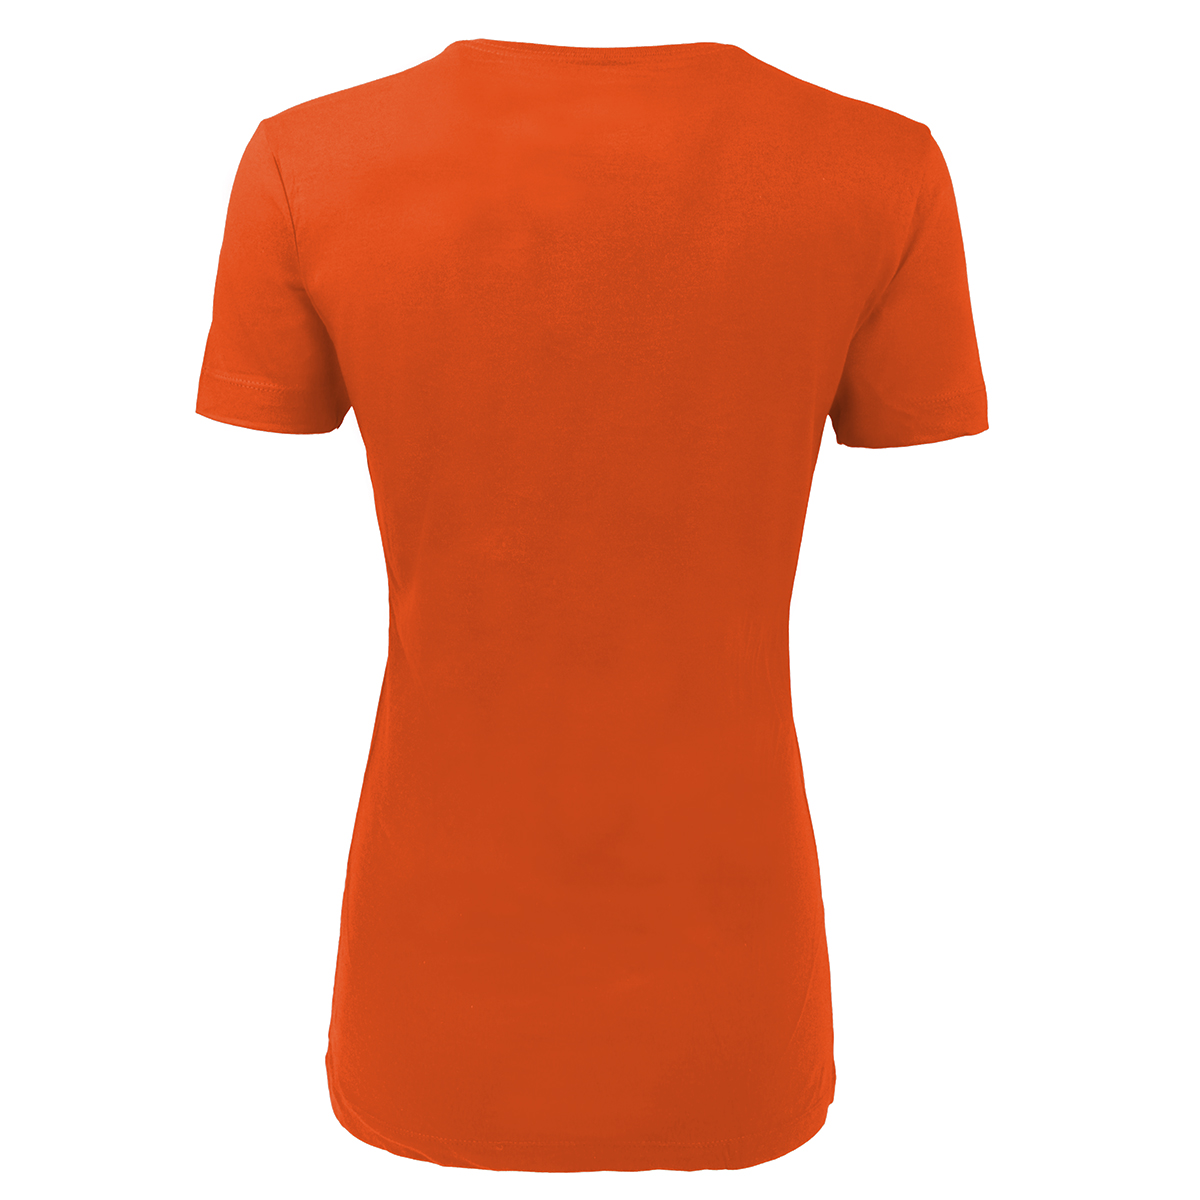 Nike-Women-039-s-Cotton-Loose-Fit-T-Shirt thumbnail 7